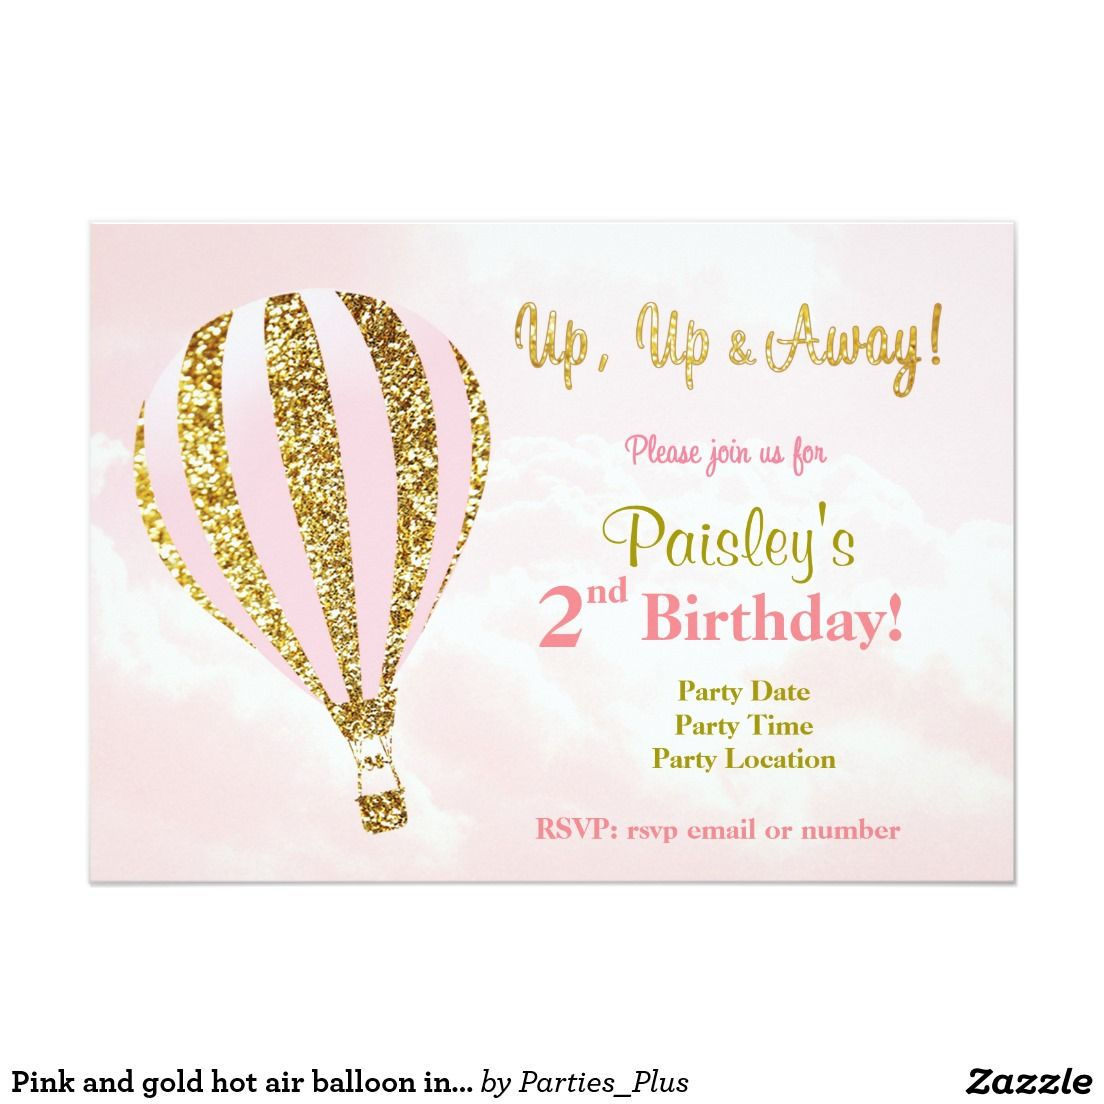 Hot air balloon birthday Invitations in pink and gold